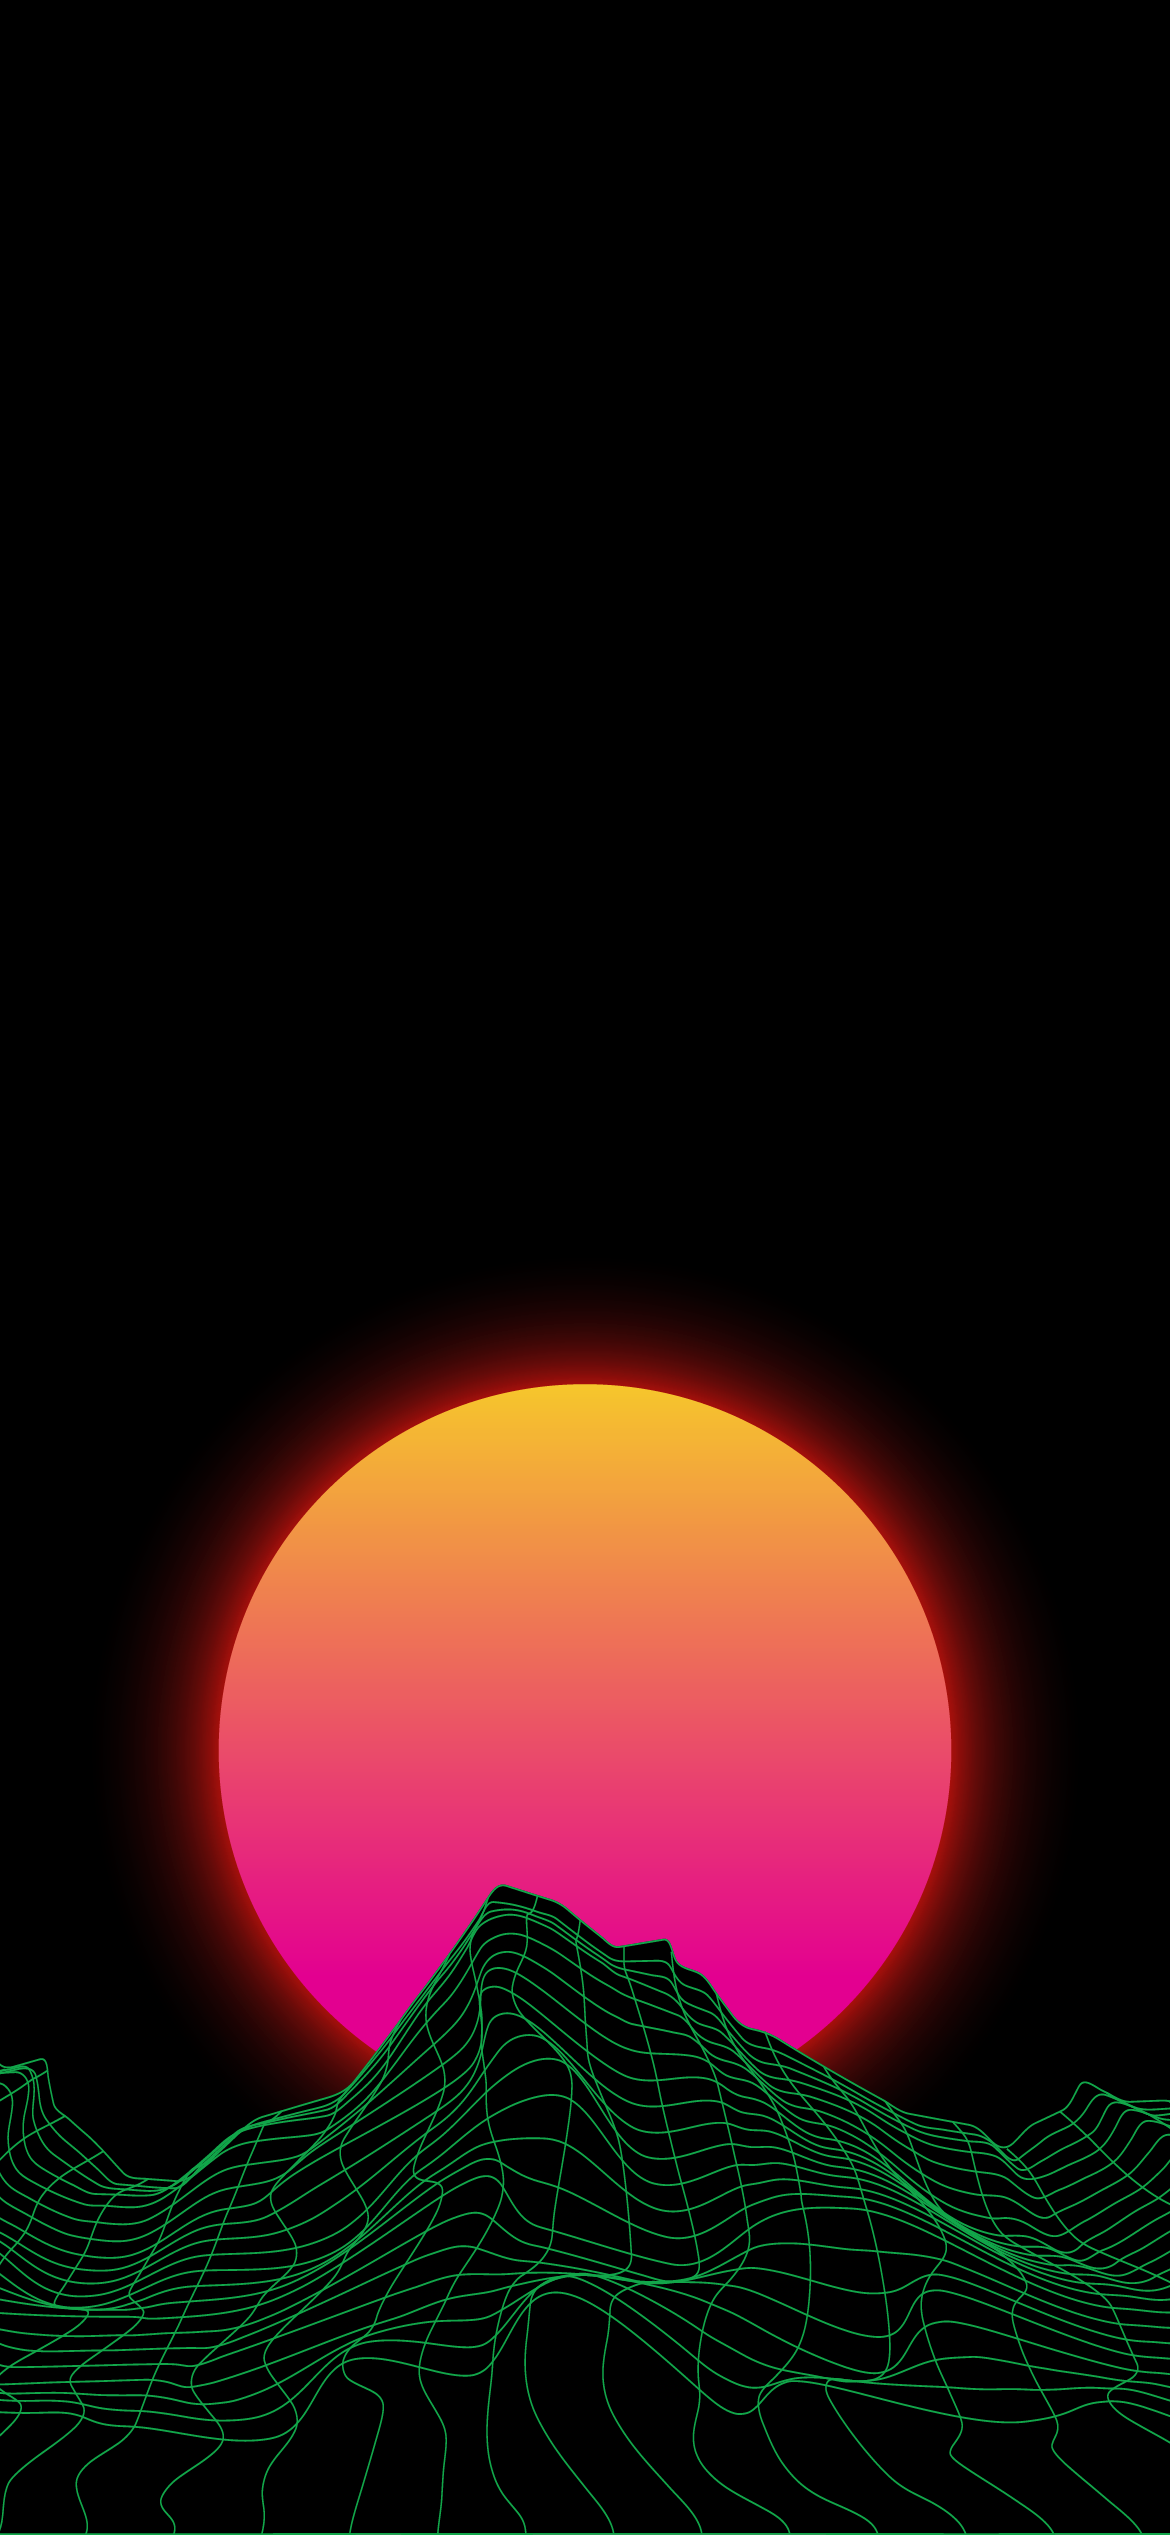 retro, outrun, synthwave msynth, amoled, true black, heroscreen, cool wallpaper